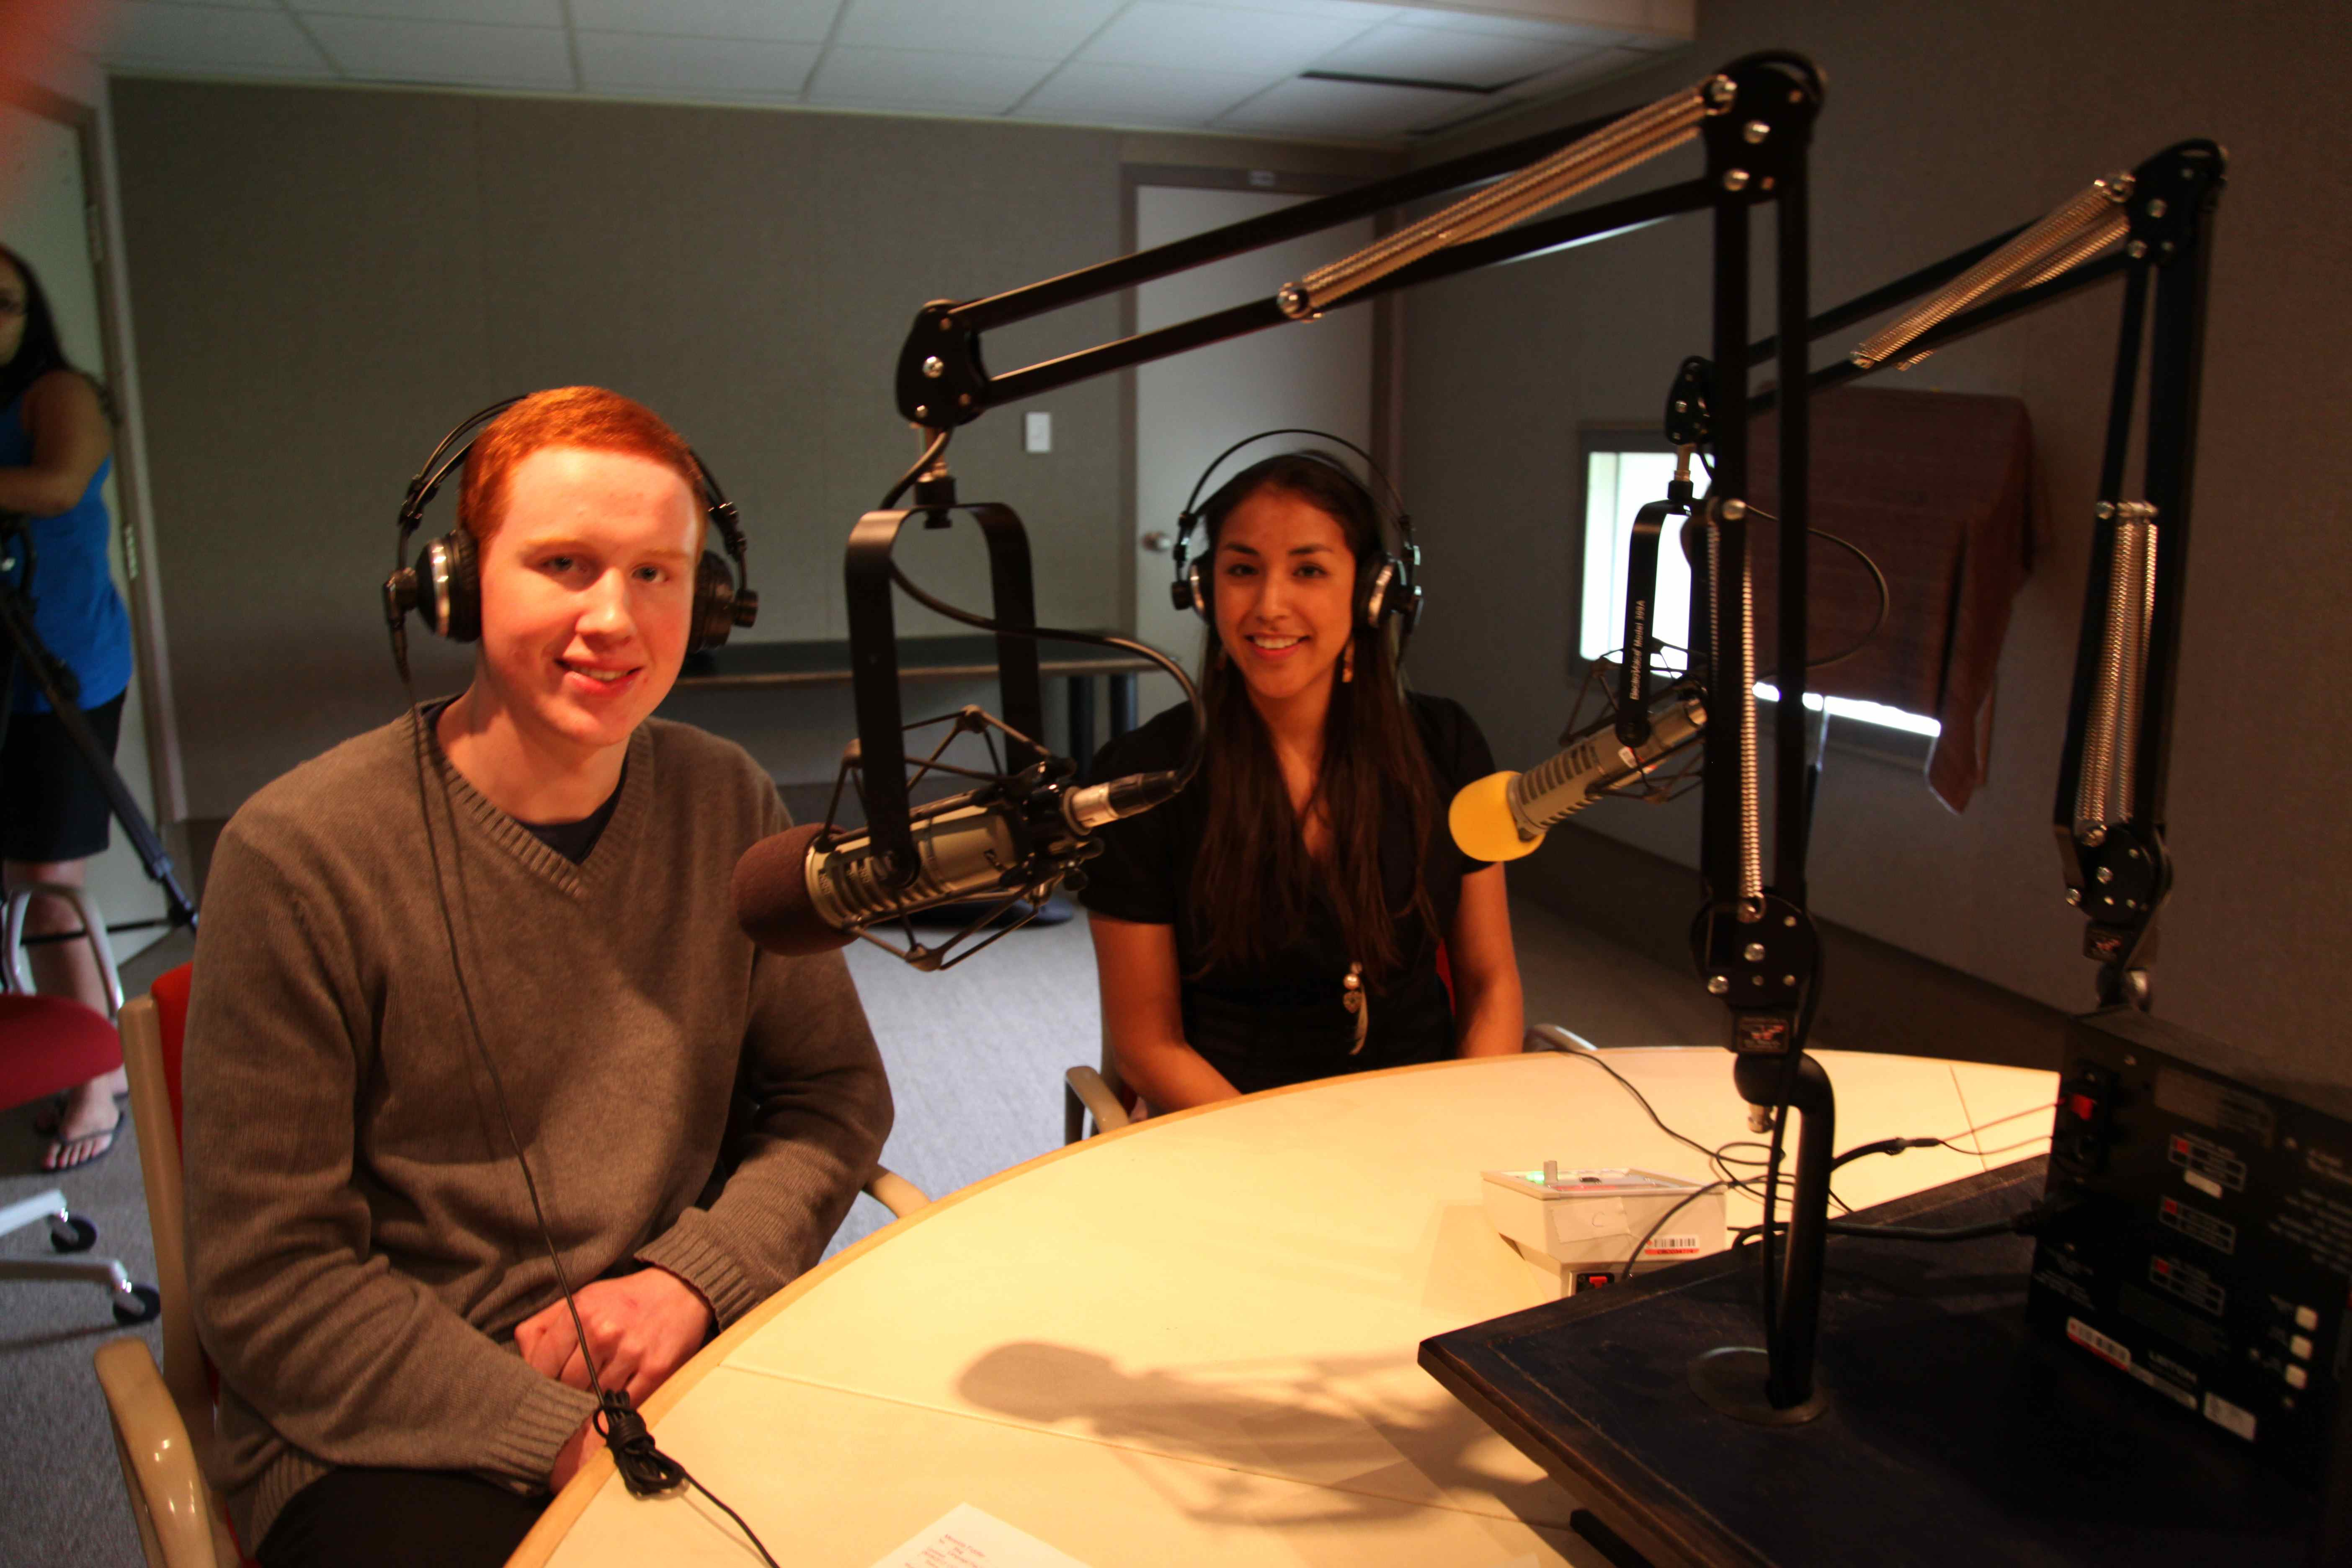 Kristy Auger and Liam Avison hosted a one-hour show on The Story From Here, that aired across Canada on June 19, 2013.